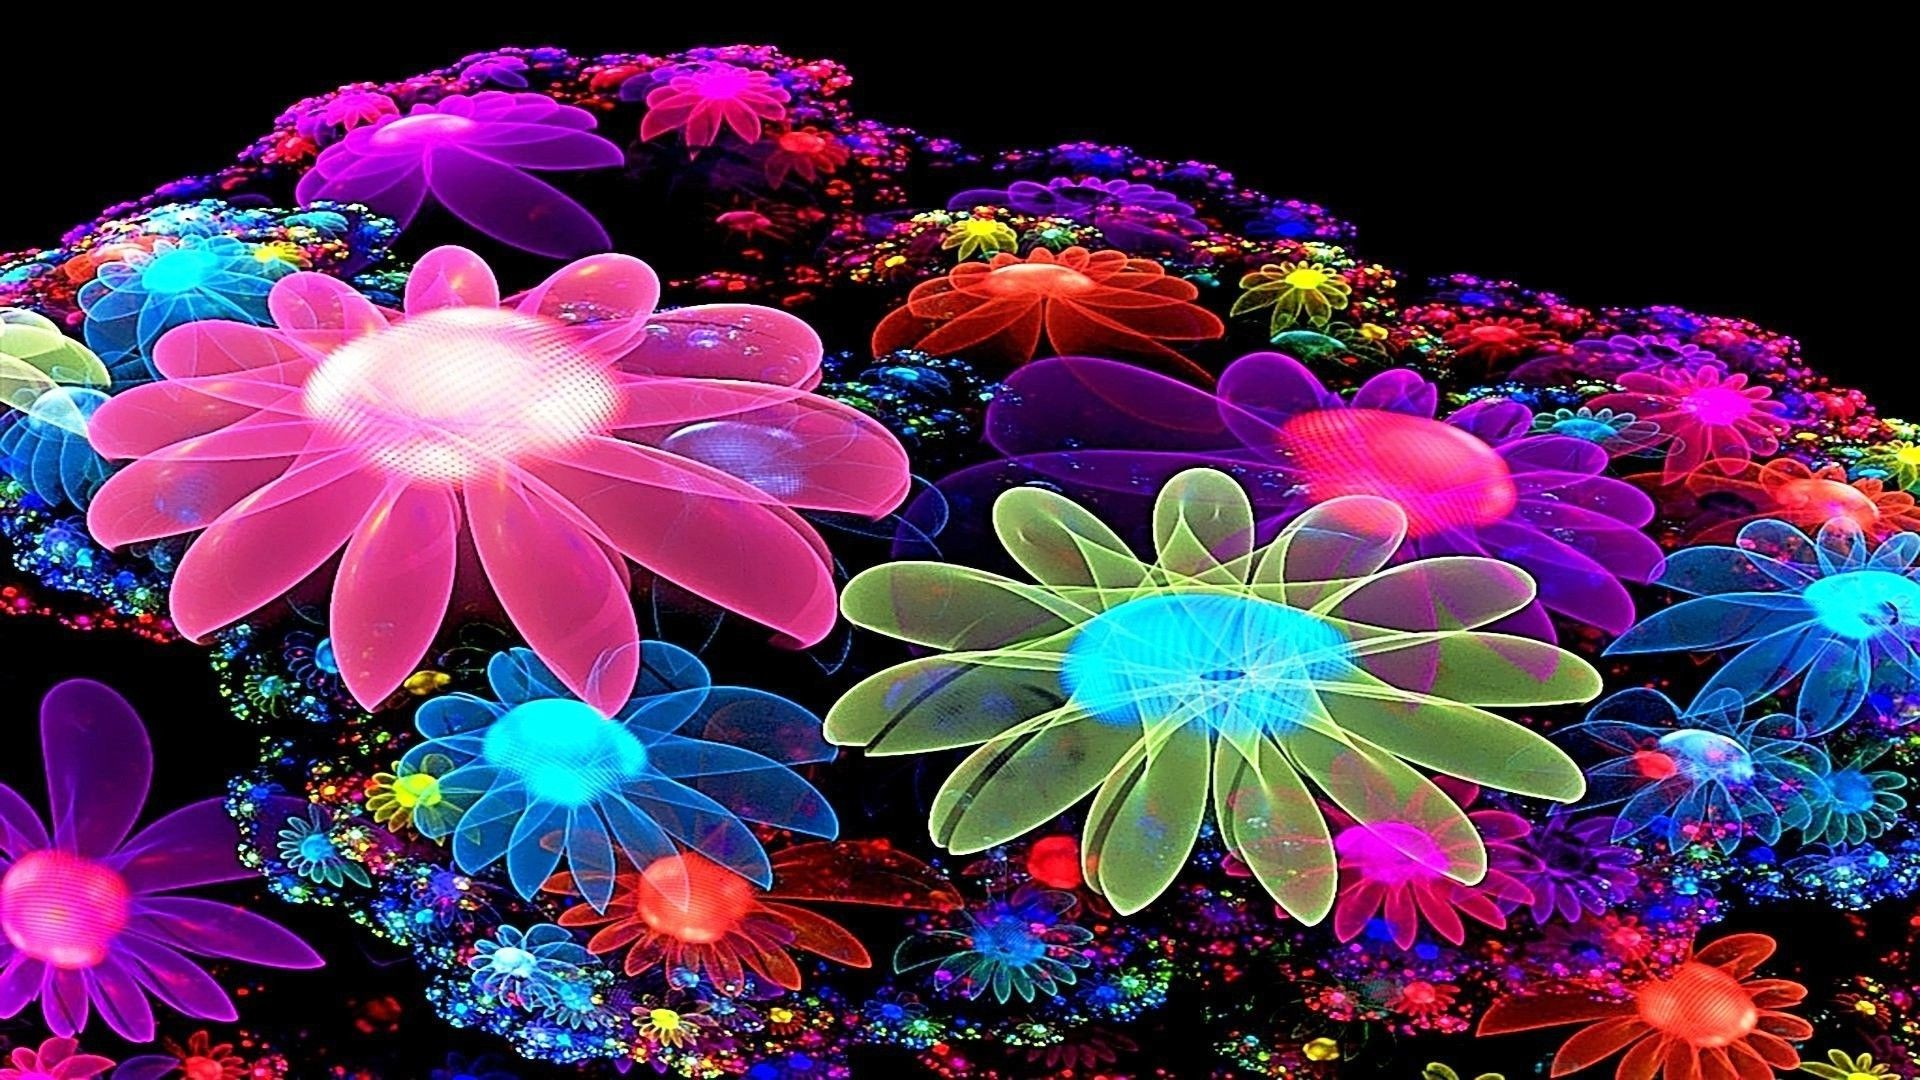 Colorful Flower Wallpaper 3D Best HD Wallpapers